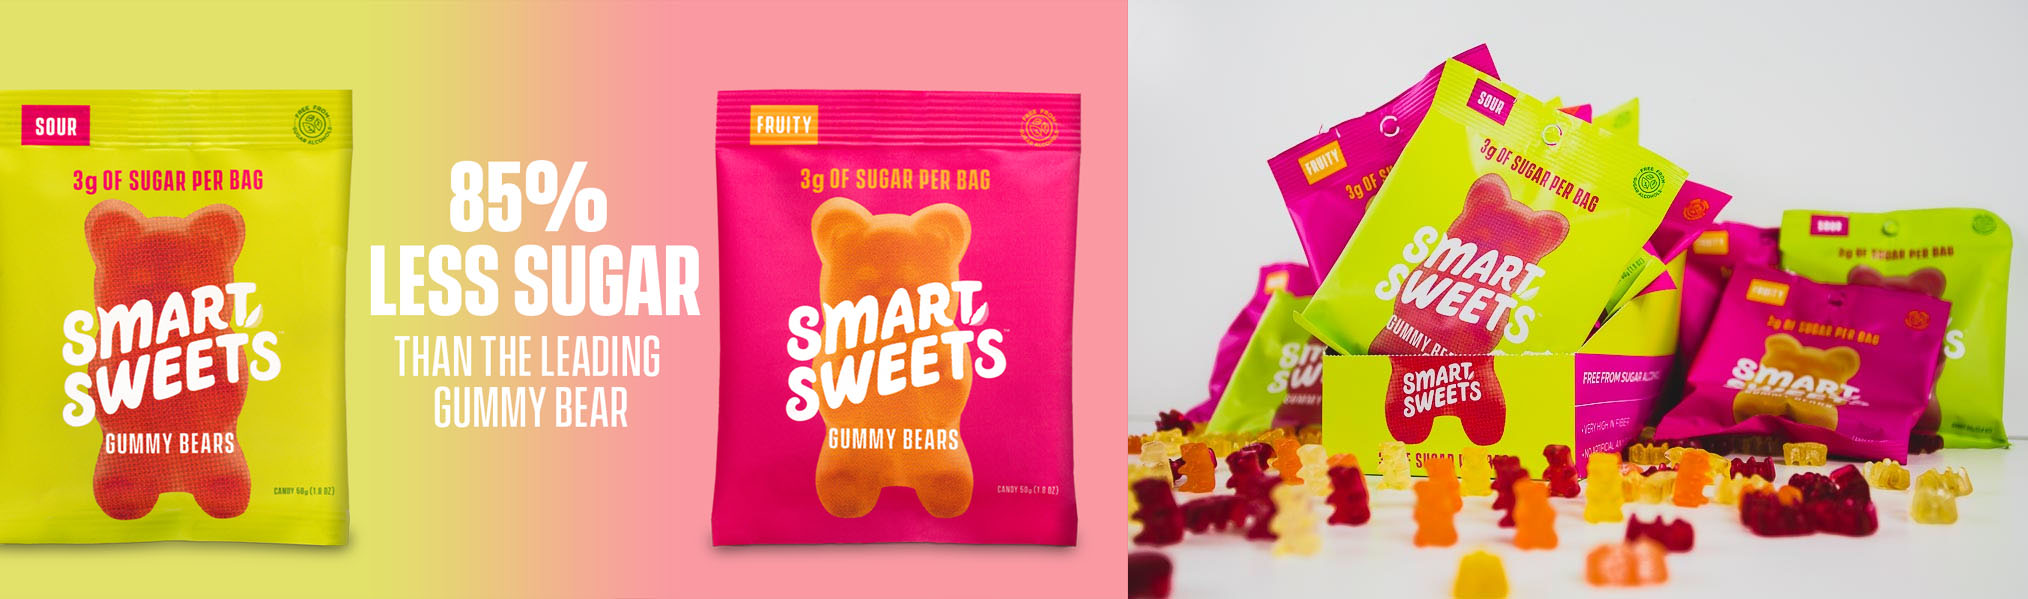 Smart Sweets Banner